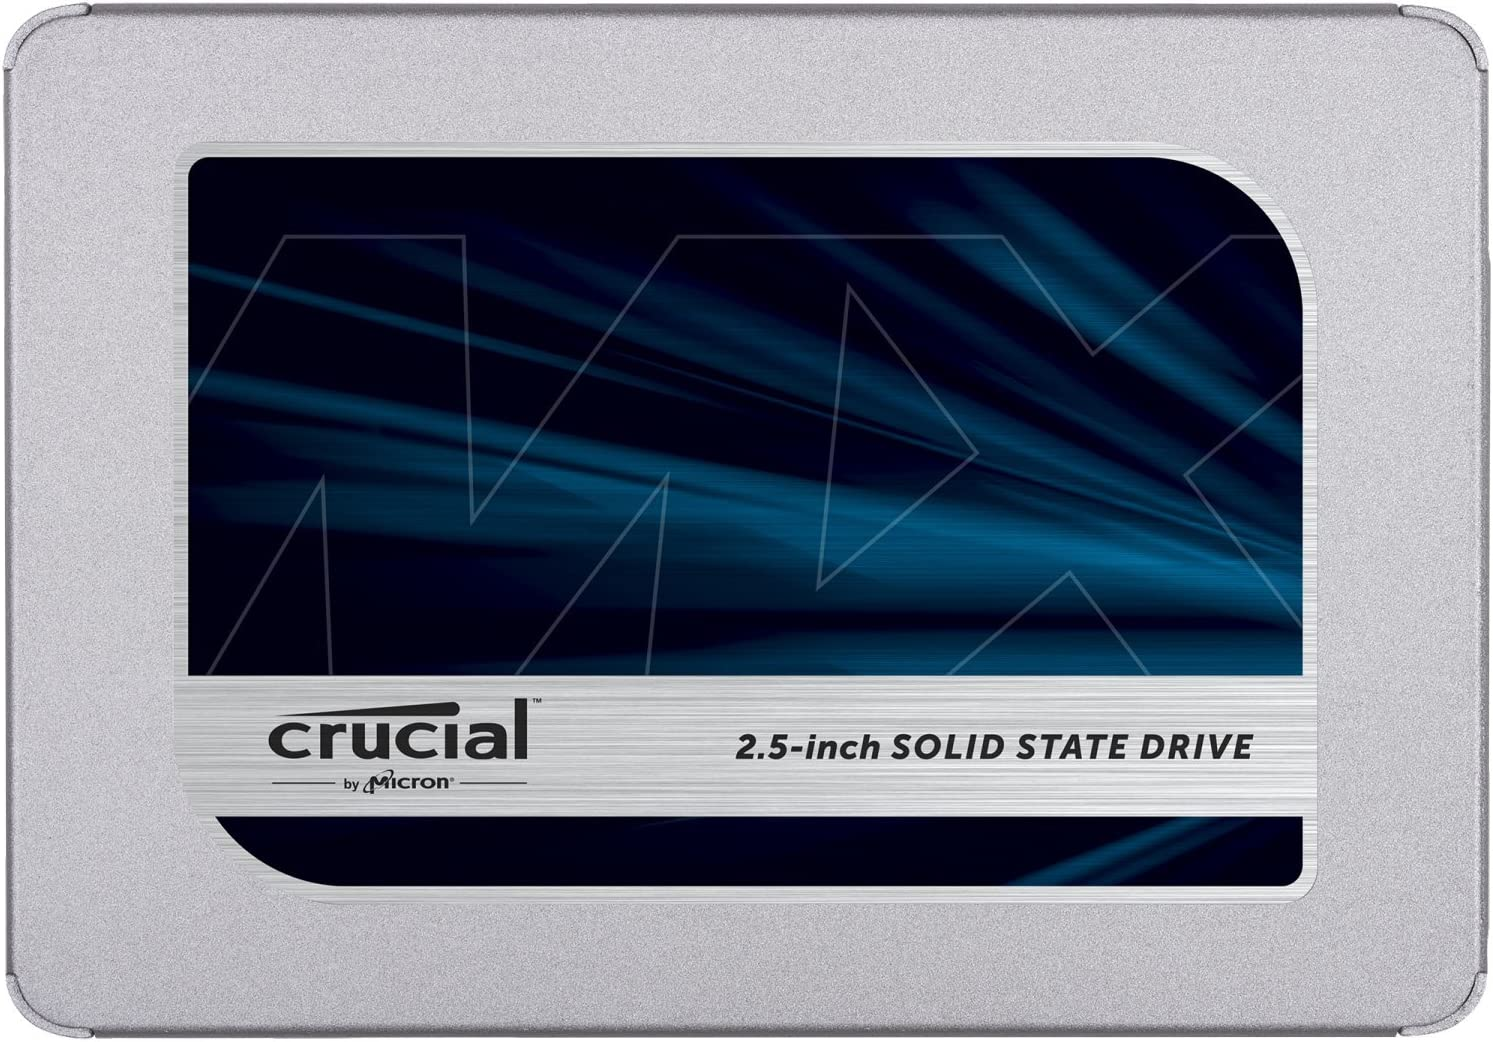 500gb solid state drive